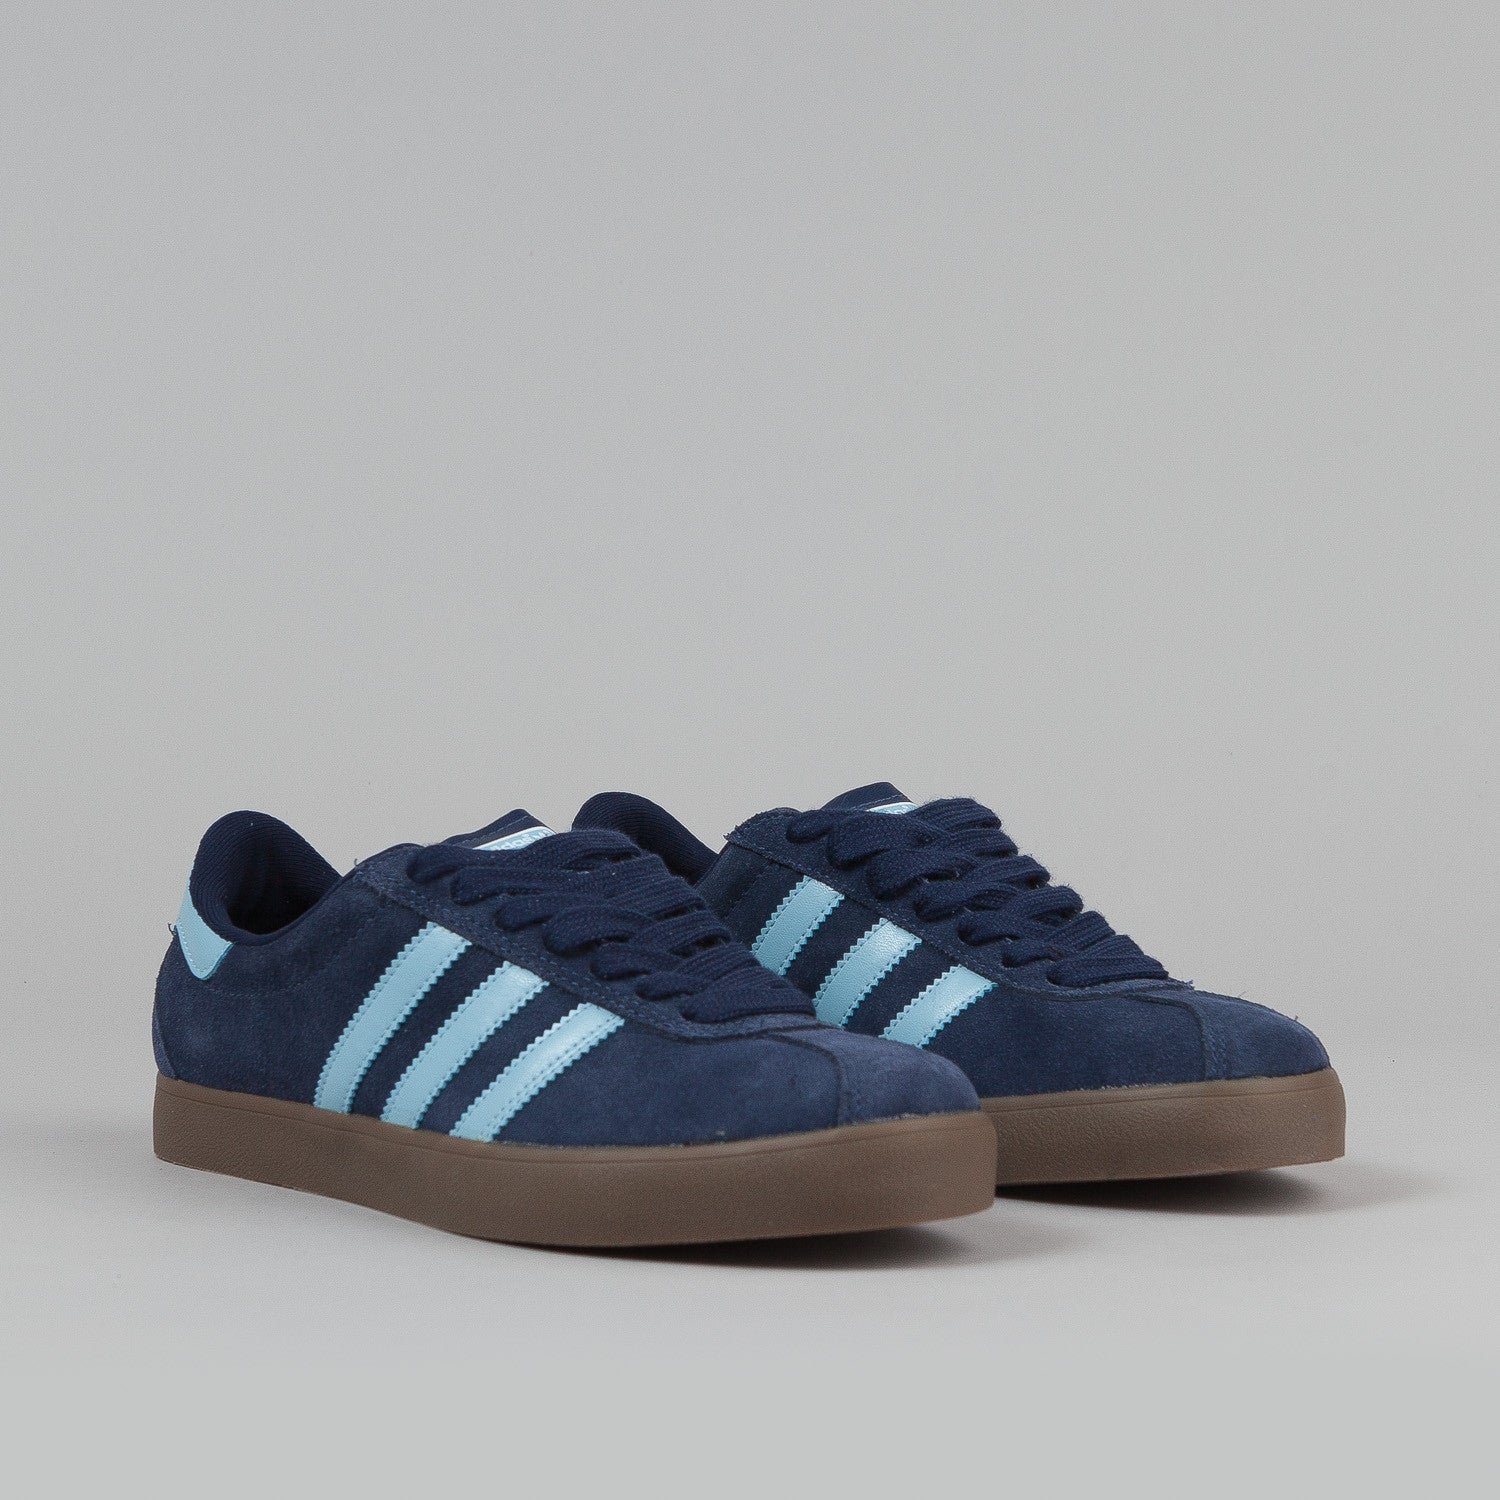 Adidas Skate Shoes - Dark Navy Slate / Argentina Blue / Gum 5